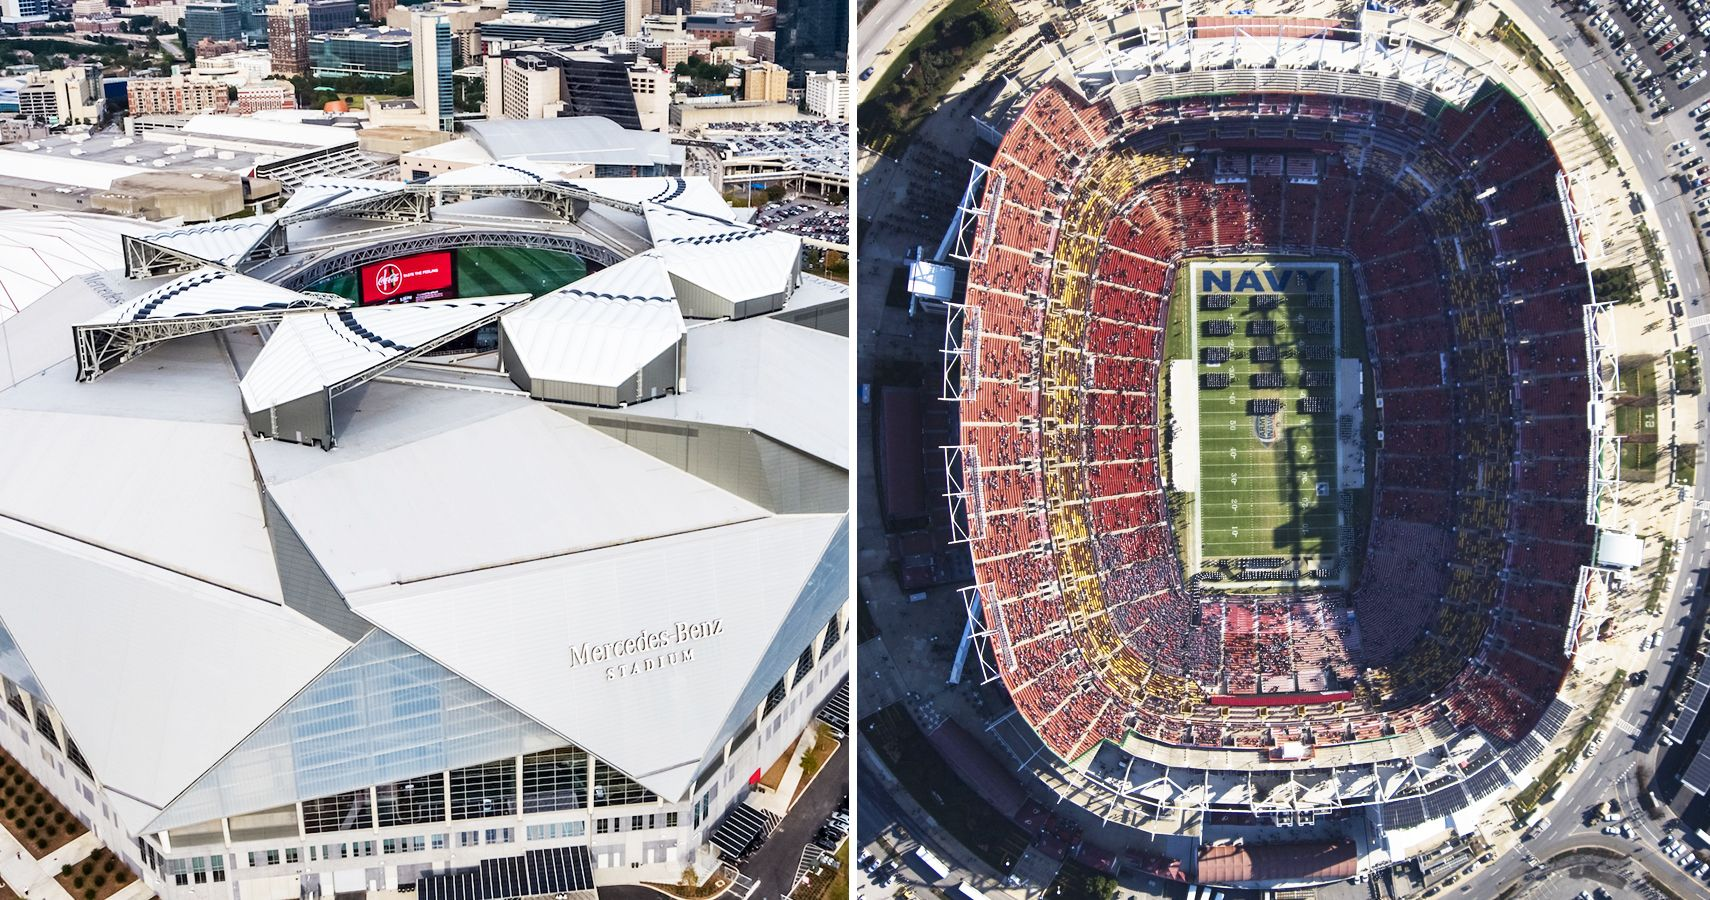 10 Football Stadiums That Have Stunning Aerial Views (And 10 That Look Like Dumps)